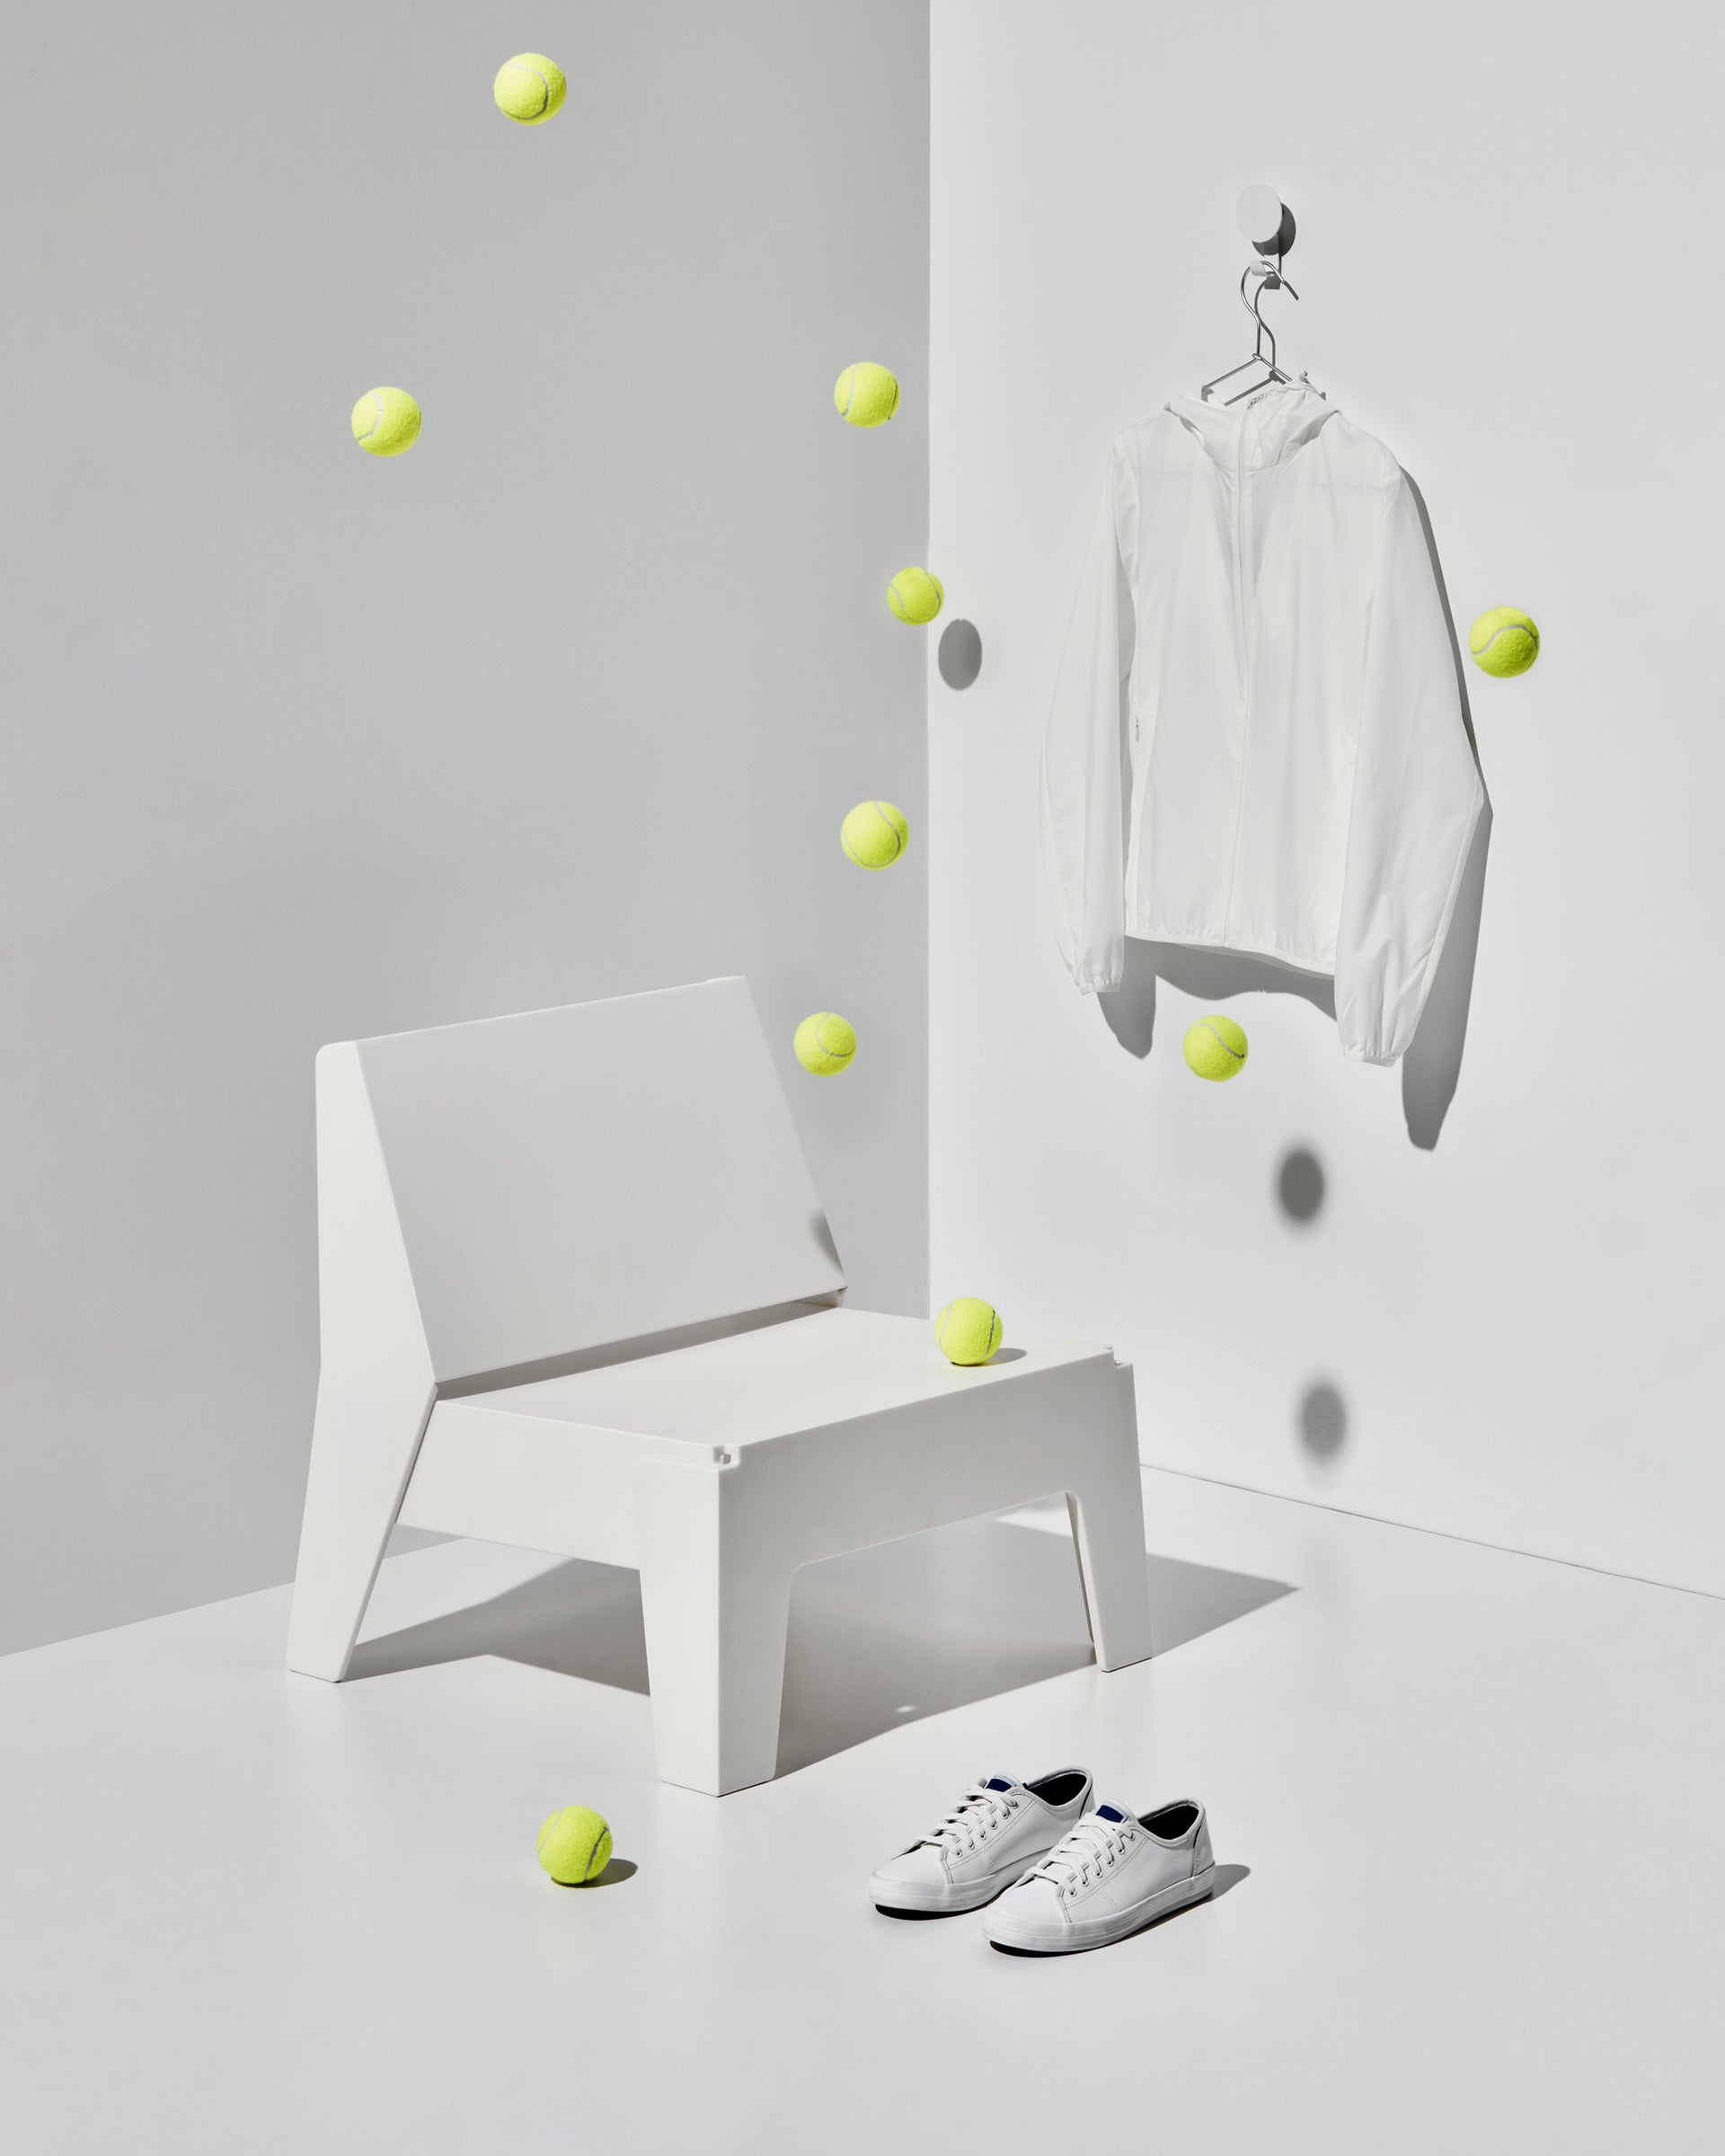 White Butter Seat   Recycled Plastic Furniture   Indoor Outdoor Waterproof   Gibson Karlo   DesignByThem